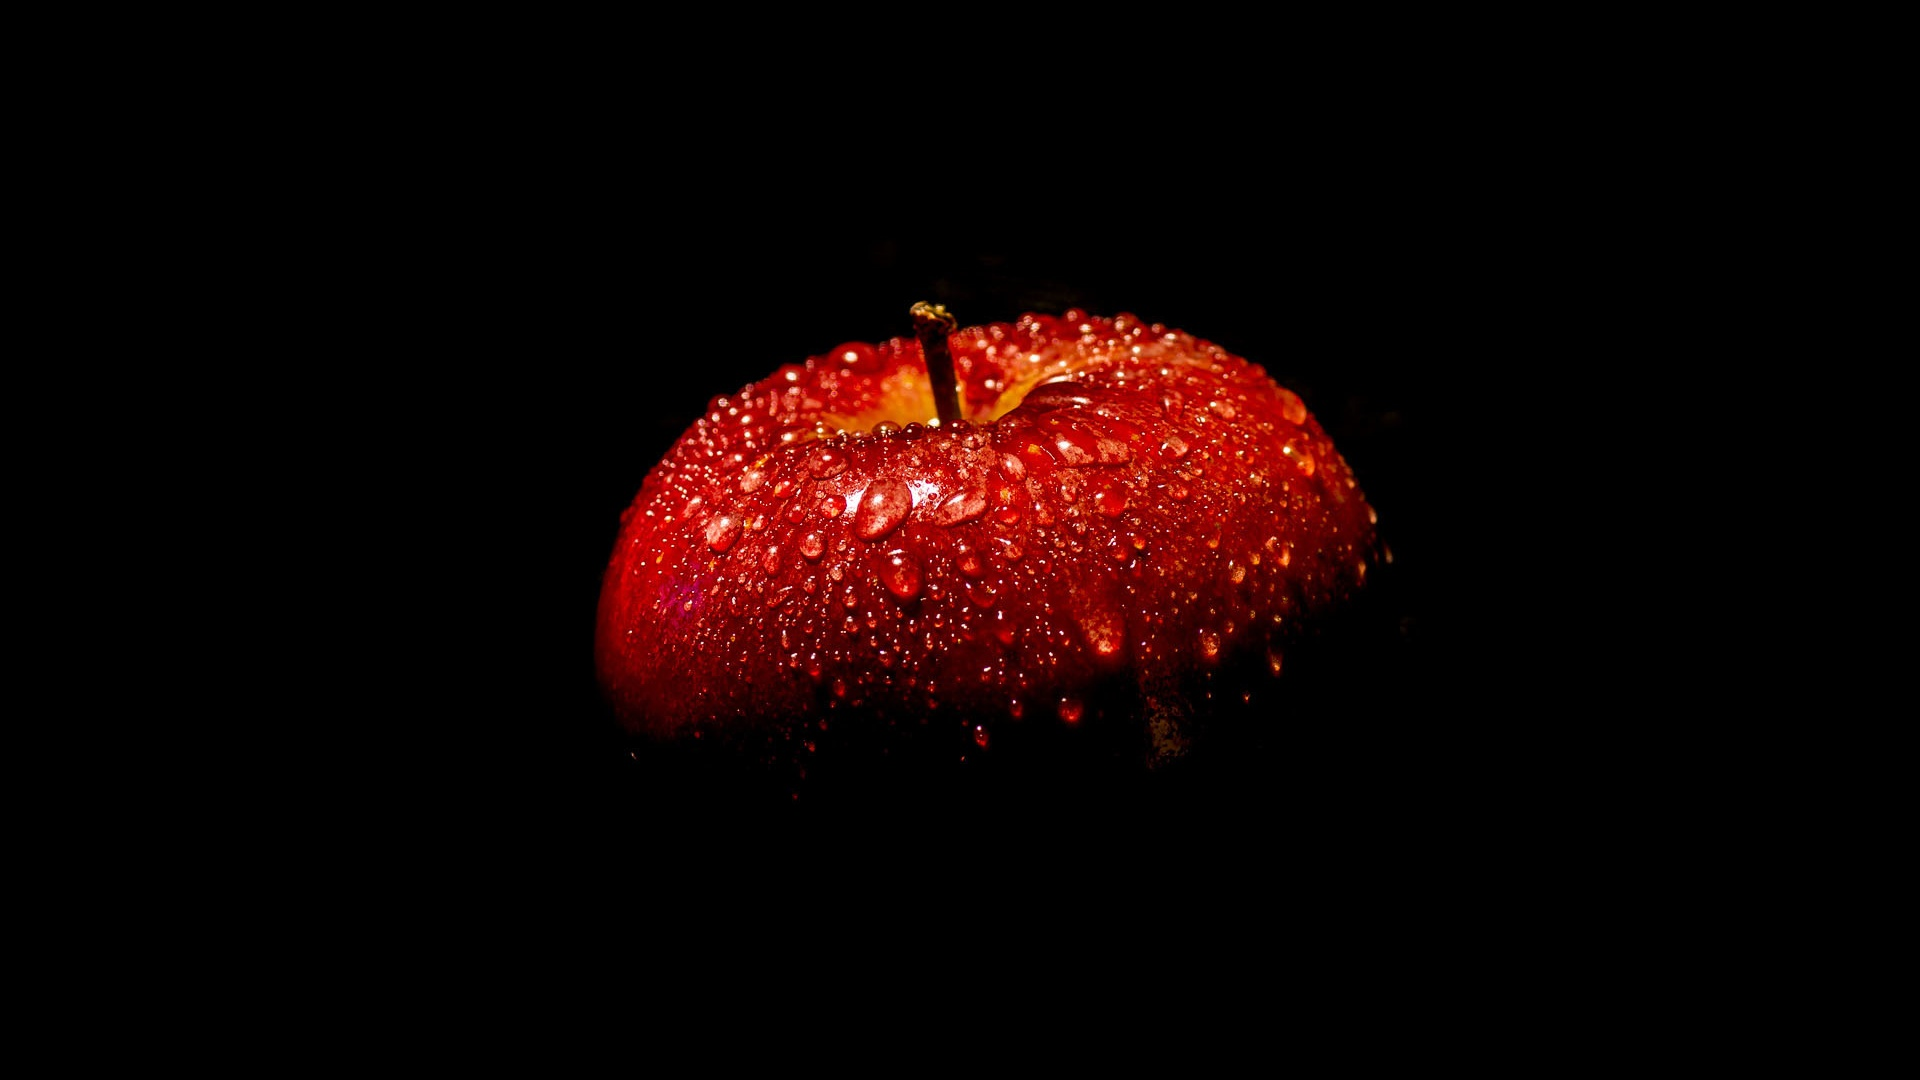 196751077441791722 additionally Very Angry Potato moreover Love abstract design Wallpapers moreover Red Apple Black Background 1920x1080 besides Plot Overview Of The Great Gatsby. on pixel apple juice